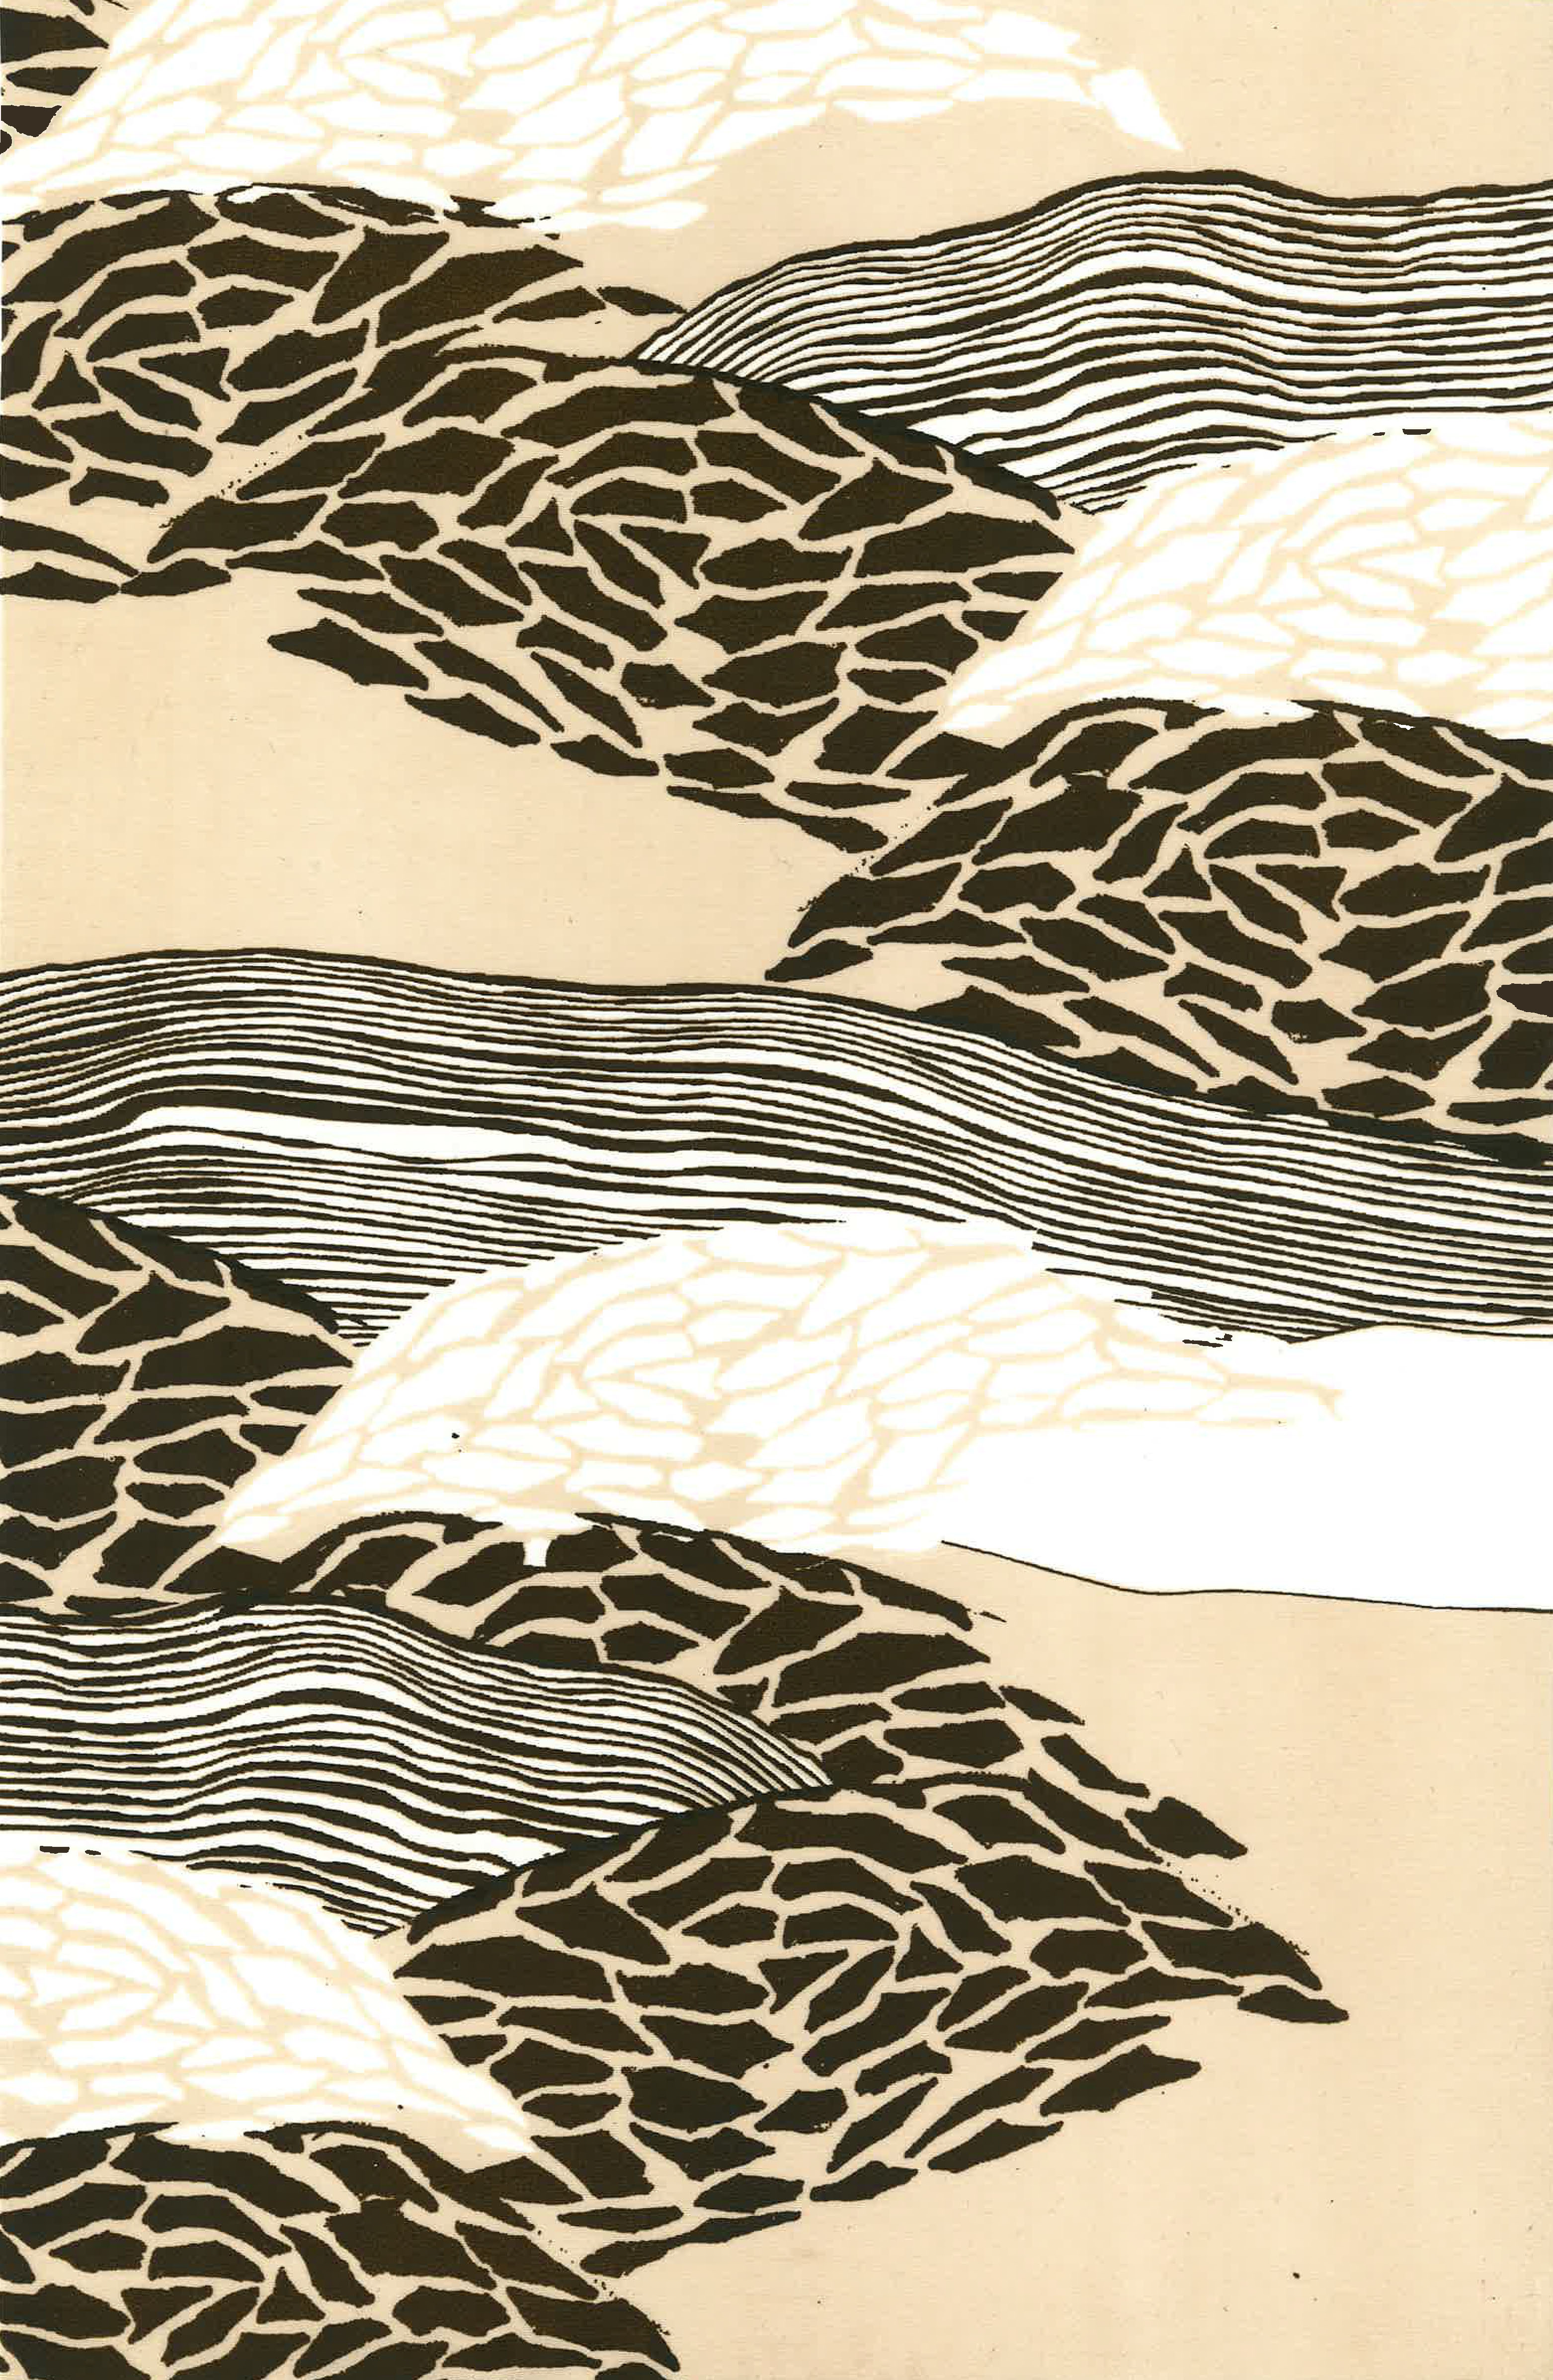 Fabric Swatch from her Fall 2014 Collection